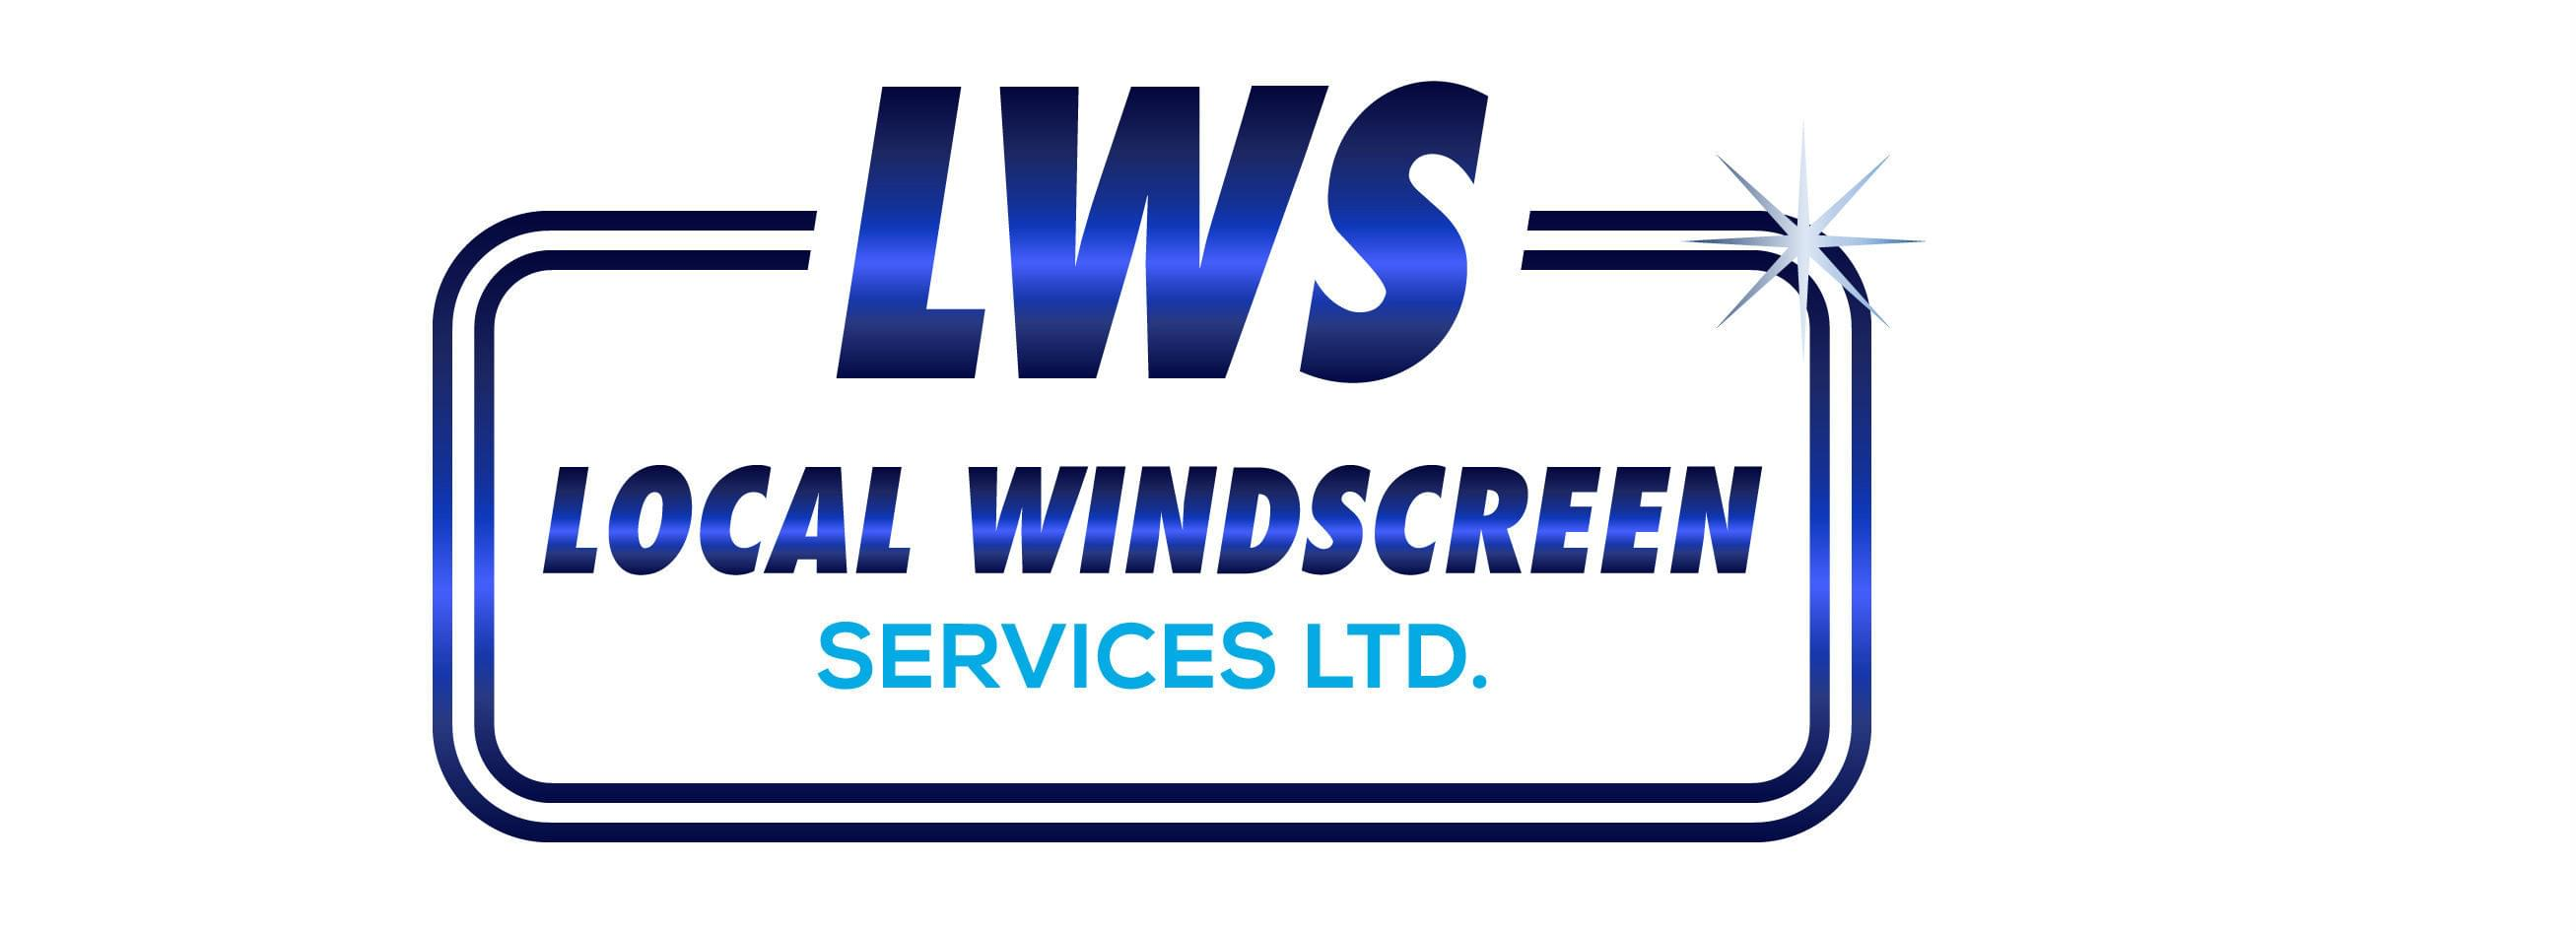 Local Windscreen Services